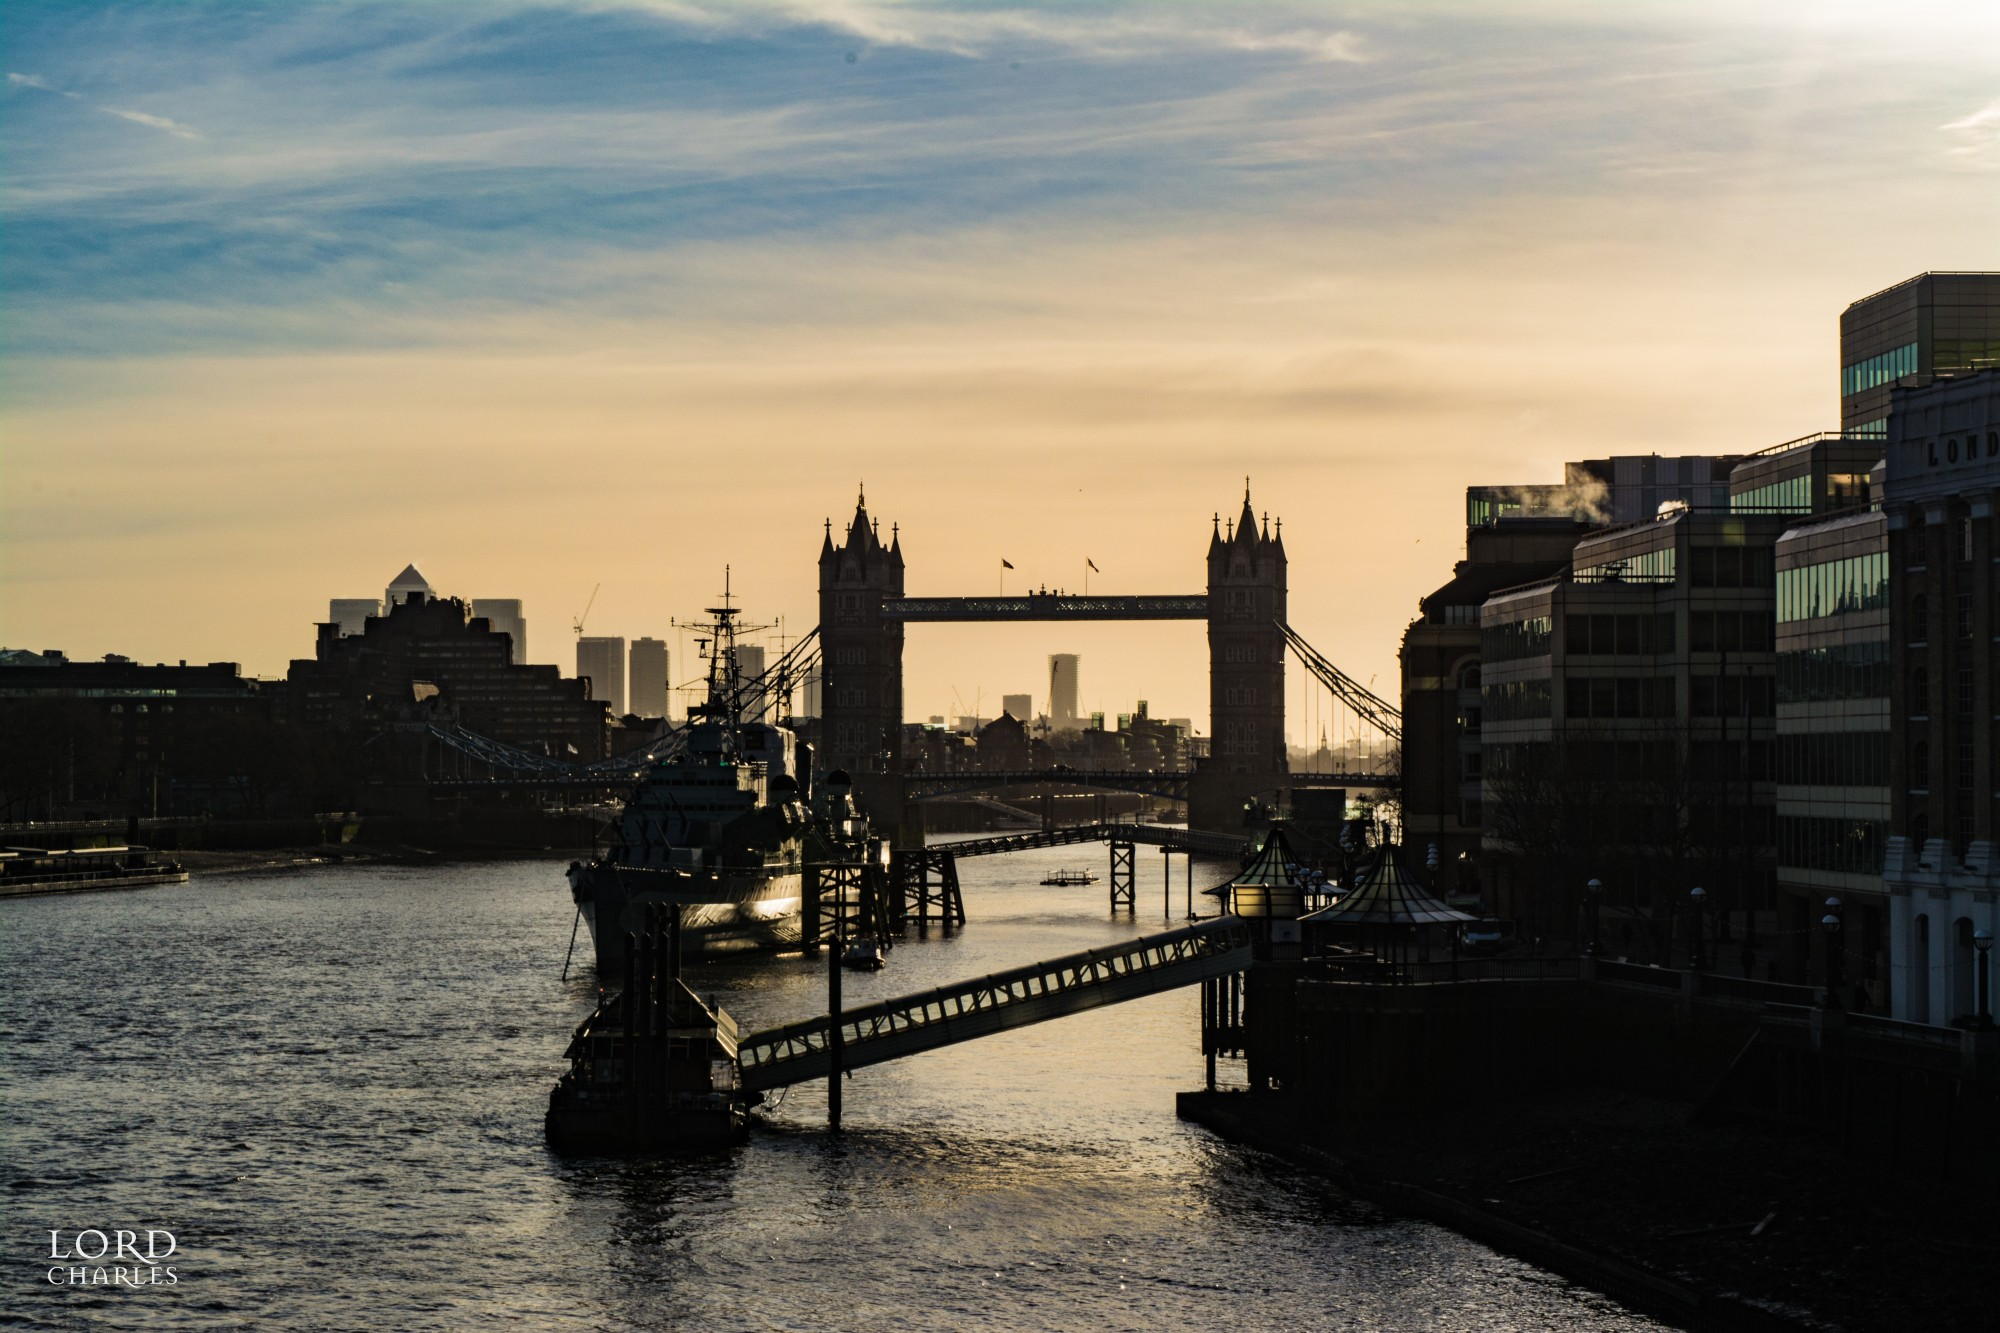 How to Cram in as Much as Possible in One Day in London